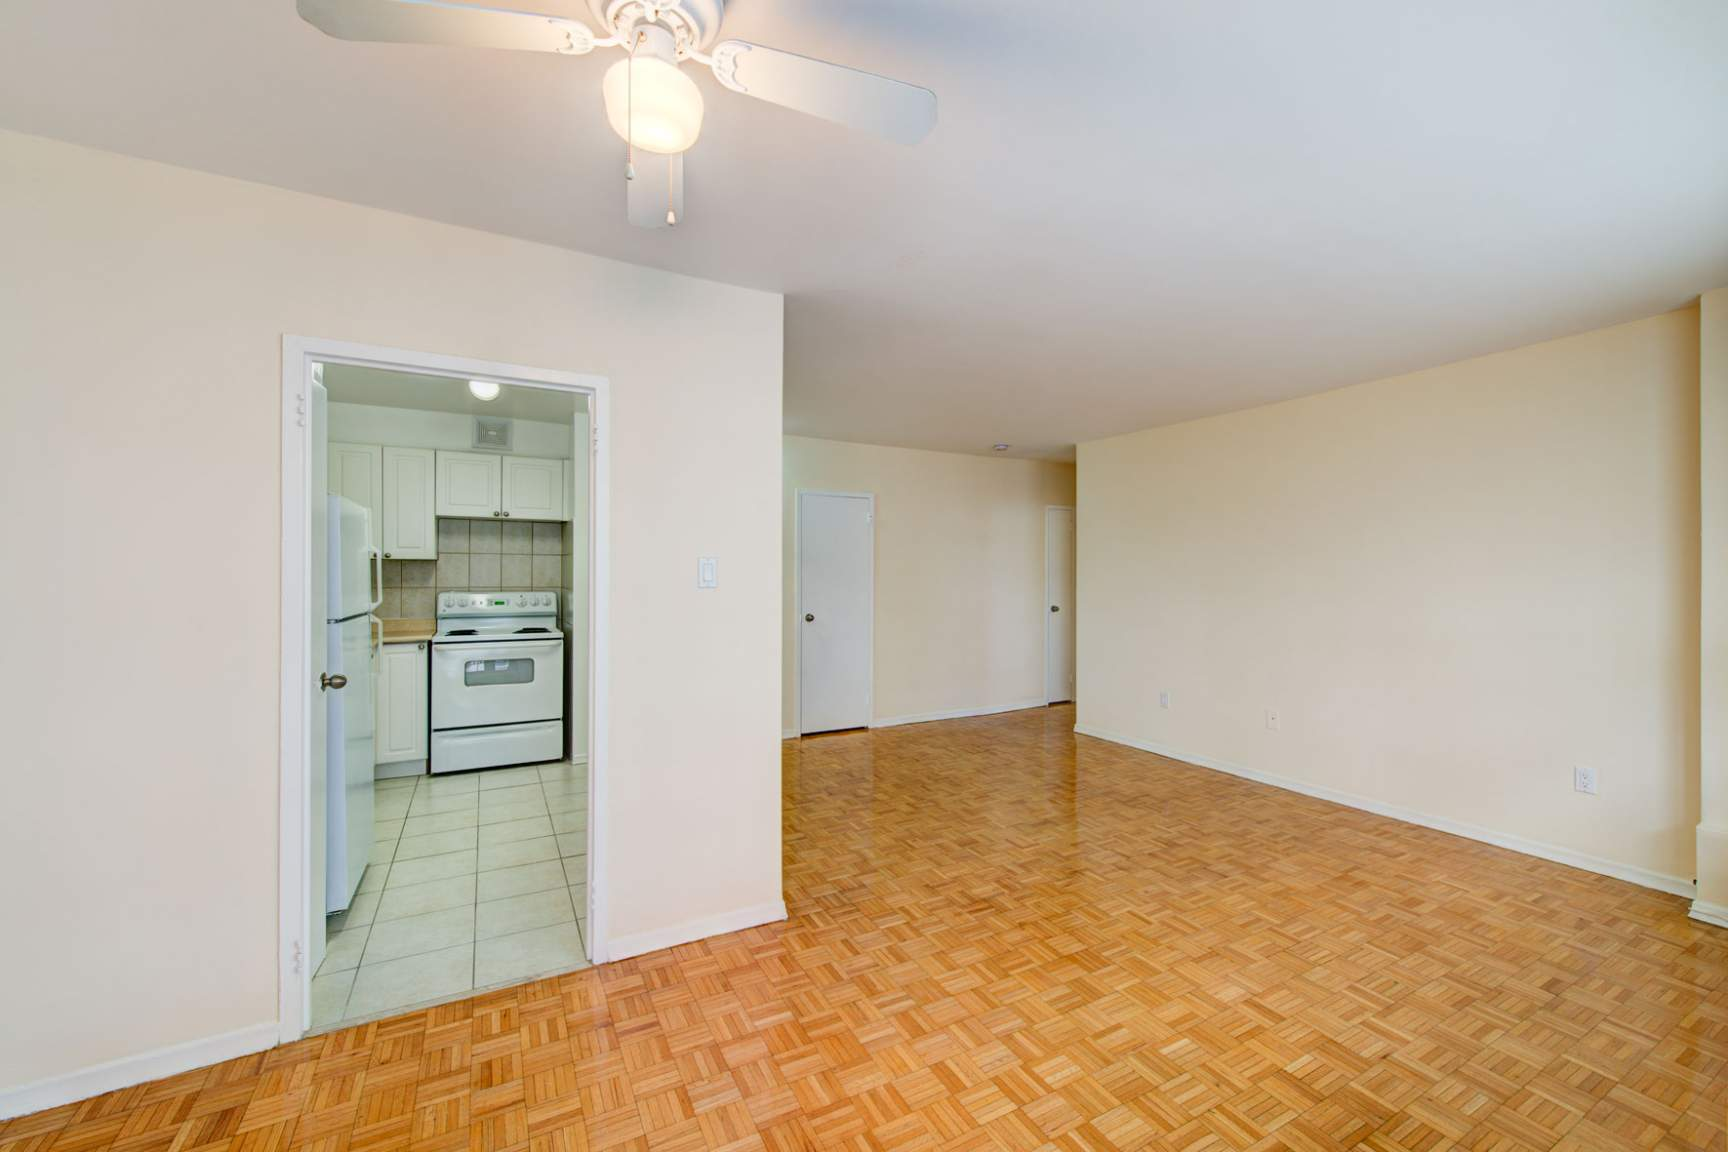 Studio / Bachelor Apartments for rent in Toronto at Redpath Tower - Photo 10 - RentersPages – L400652